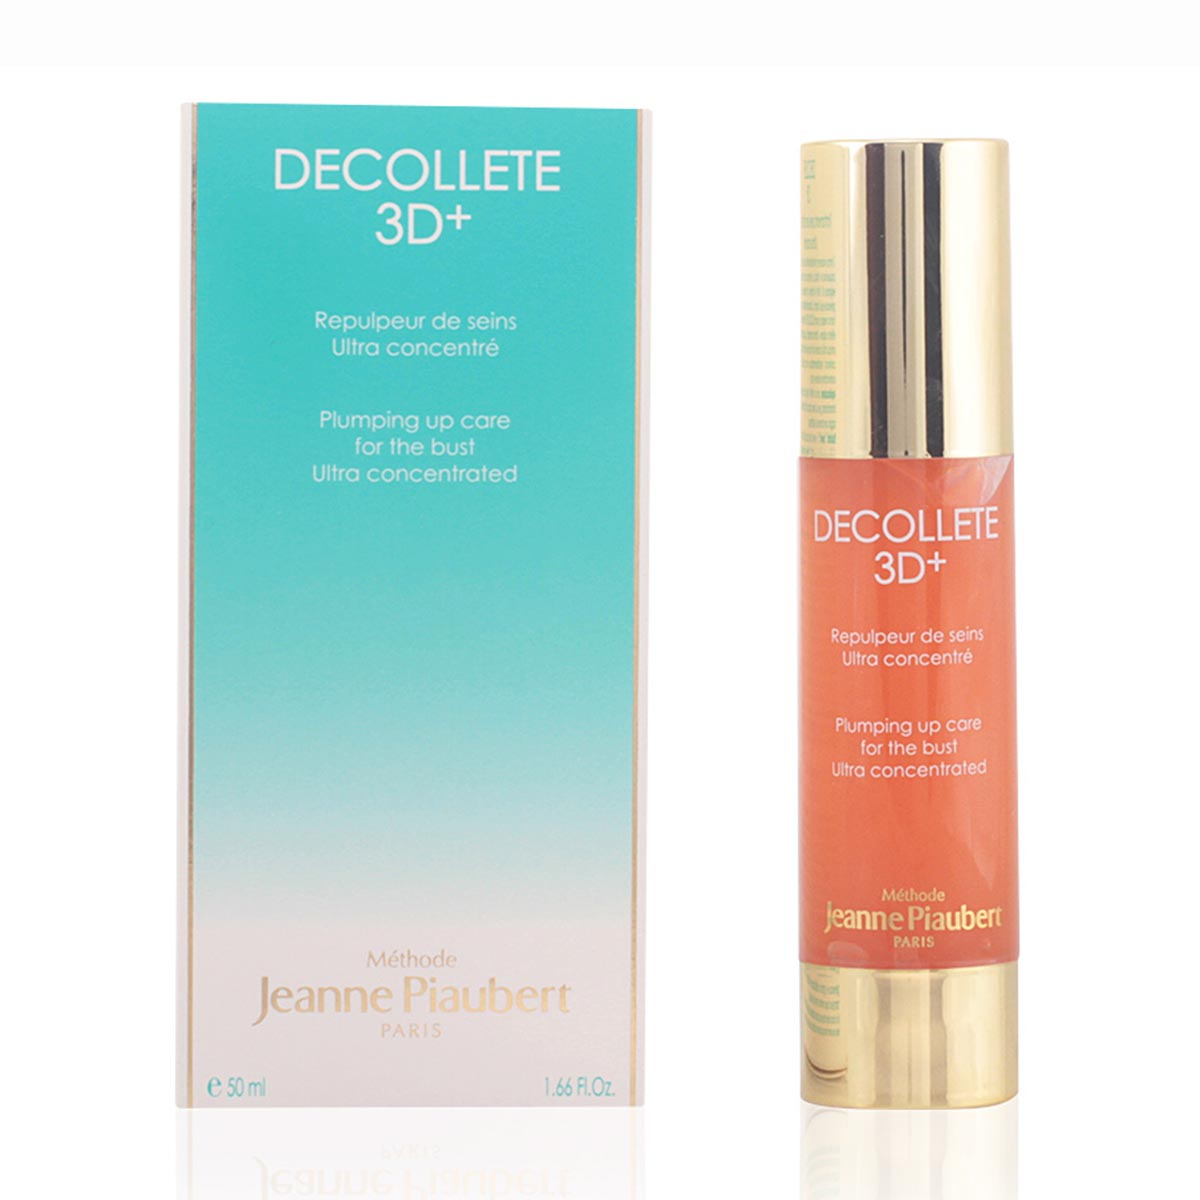 Jeanne piaubert decollete 3d plumping up care for the bust ultra concentrated 50ml vaporizador